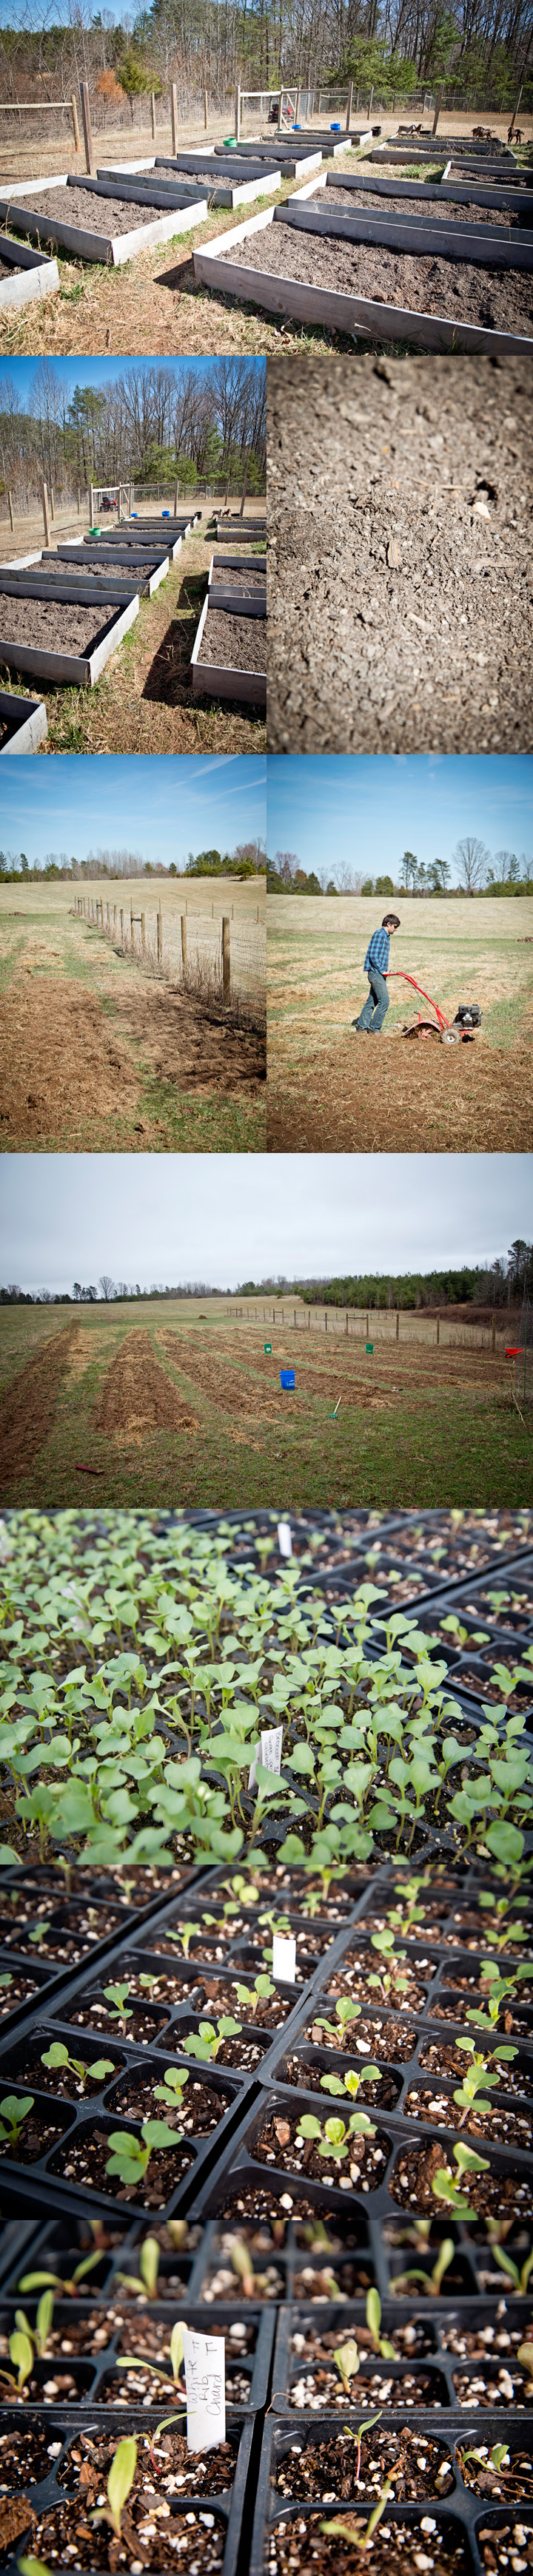 Phase 2 - The Freckled Farm